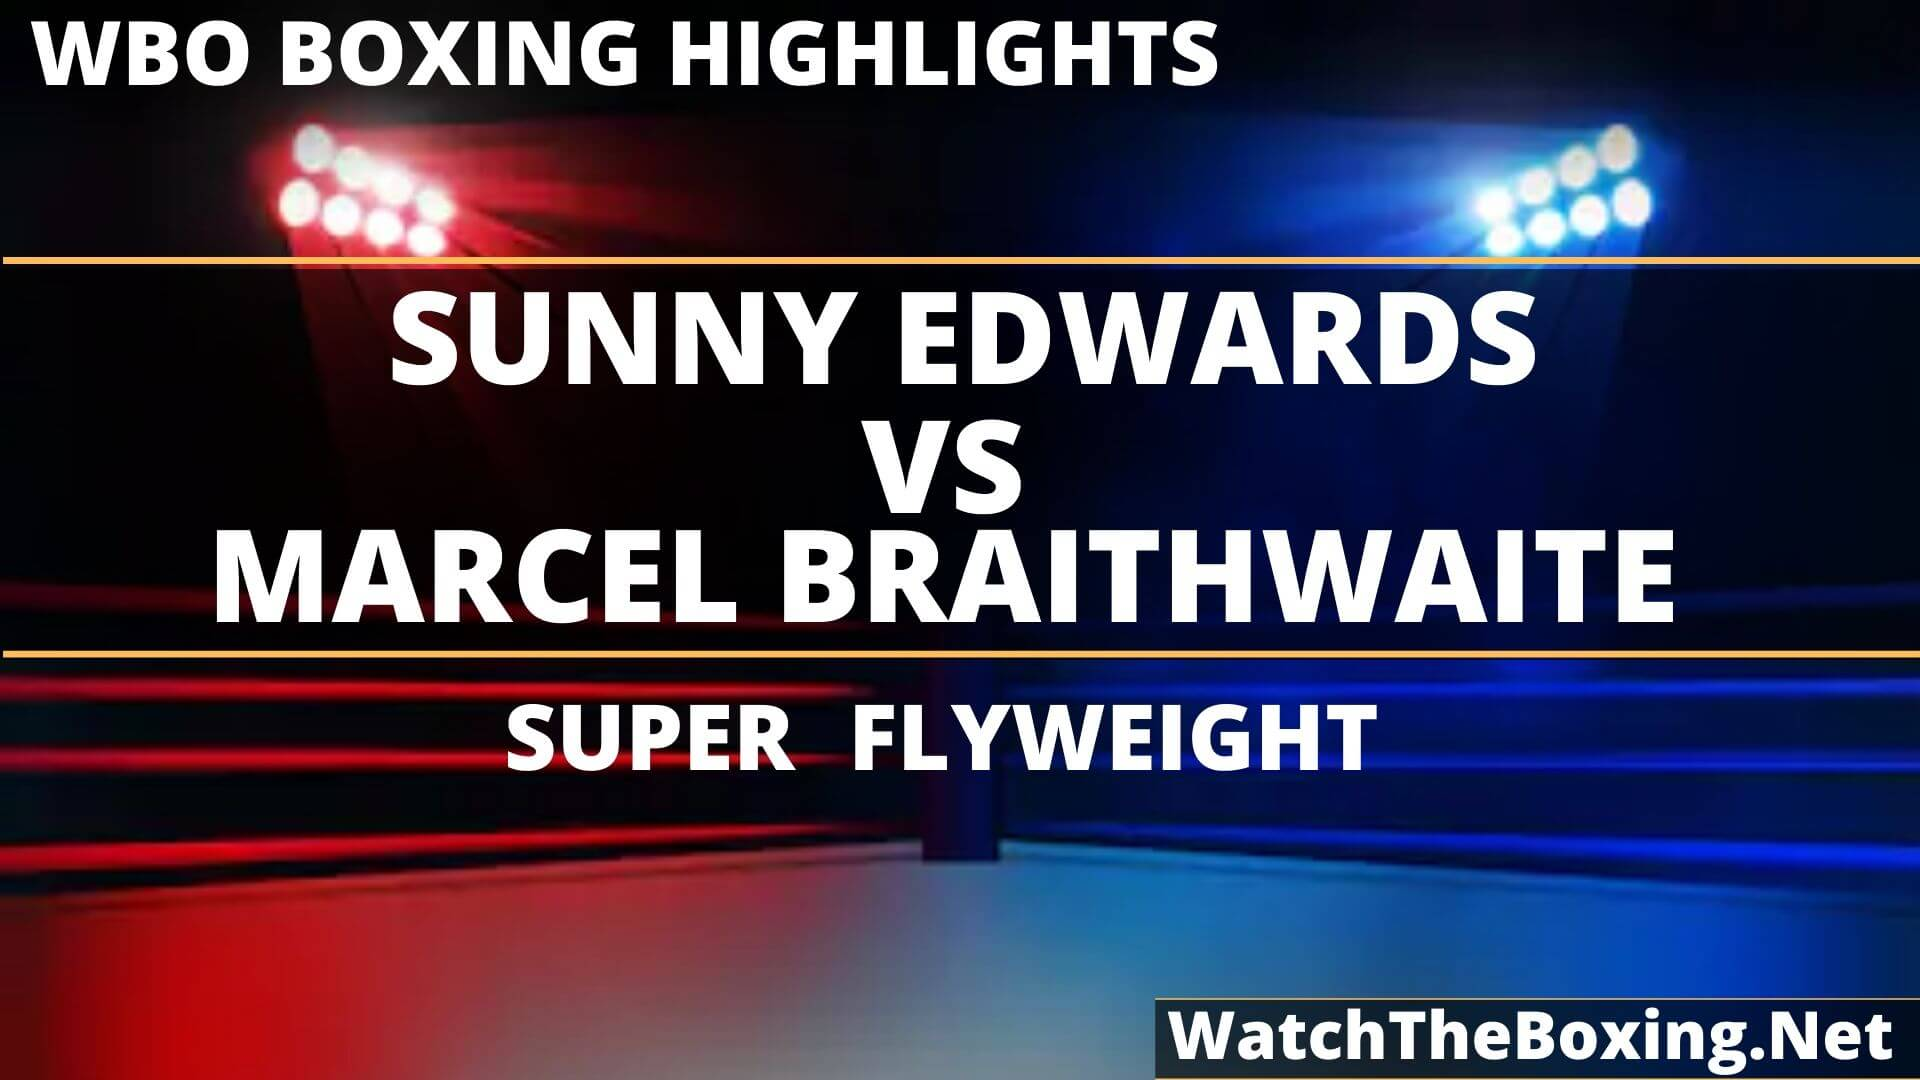 Sunny Edwards Vs Marcel Braithwaite Highlights 2019